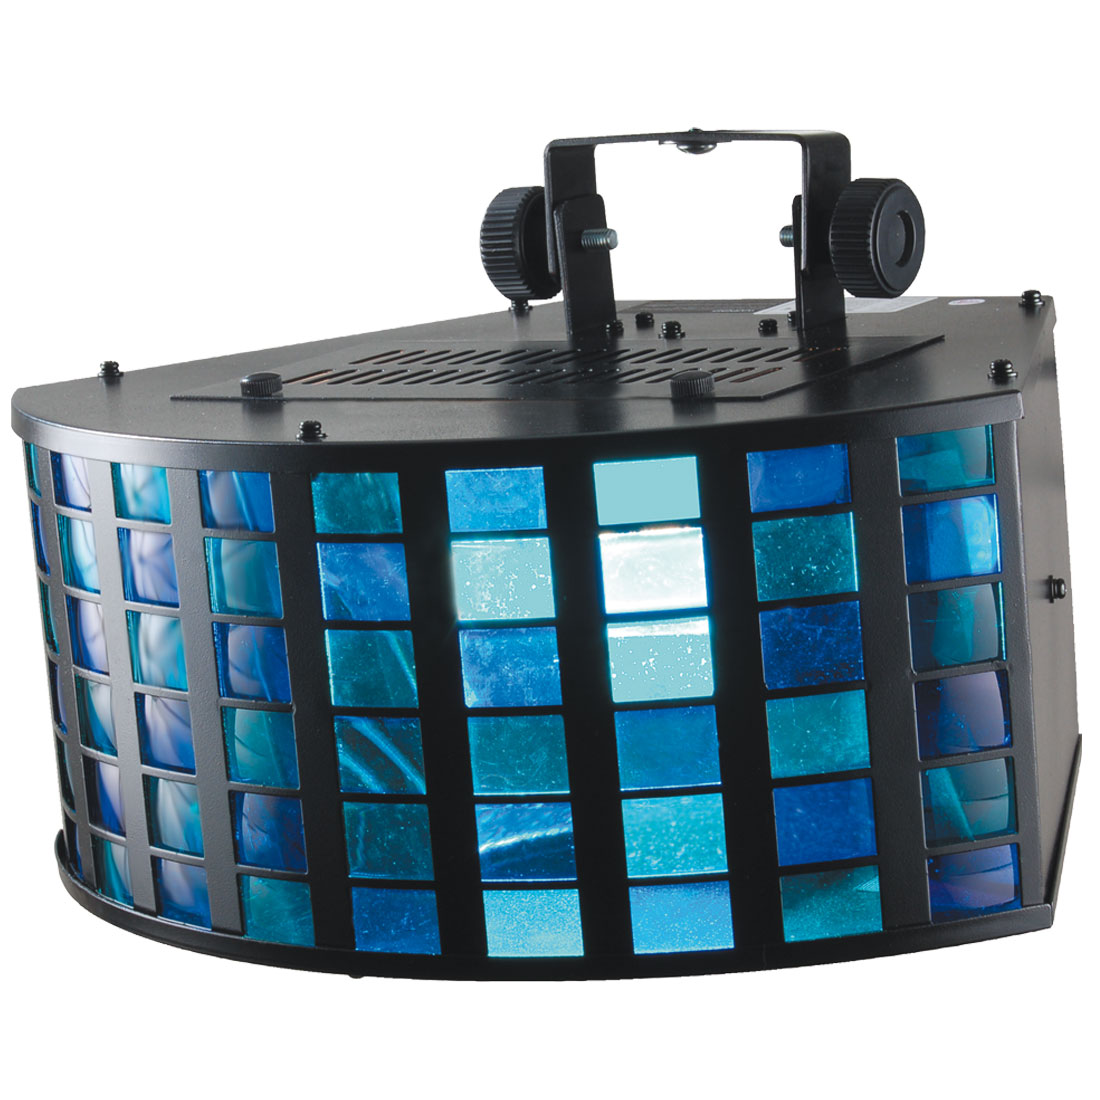 WAVE - 800W wave projector